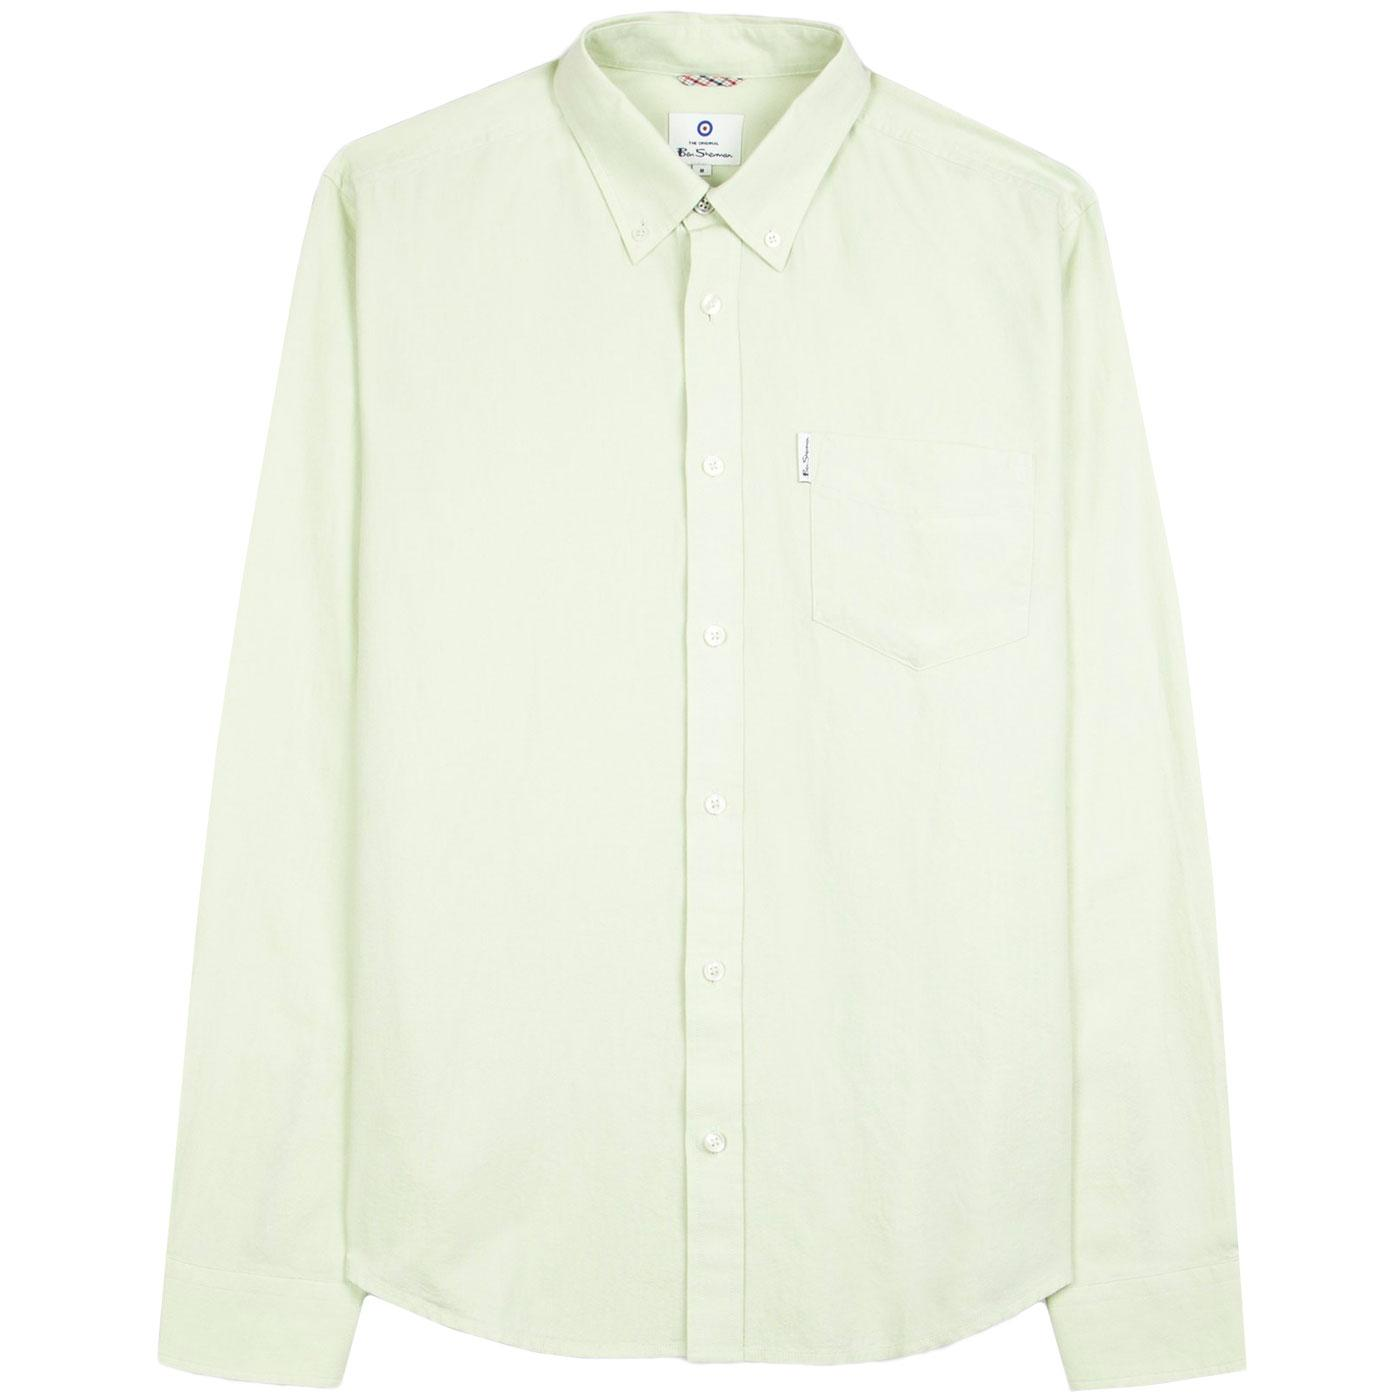 BEN SHERMAN 60s Mod LS Signature Oxford Shirt (LG)